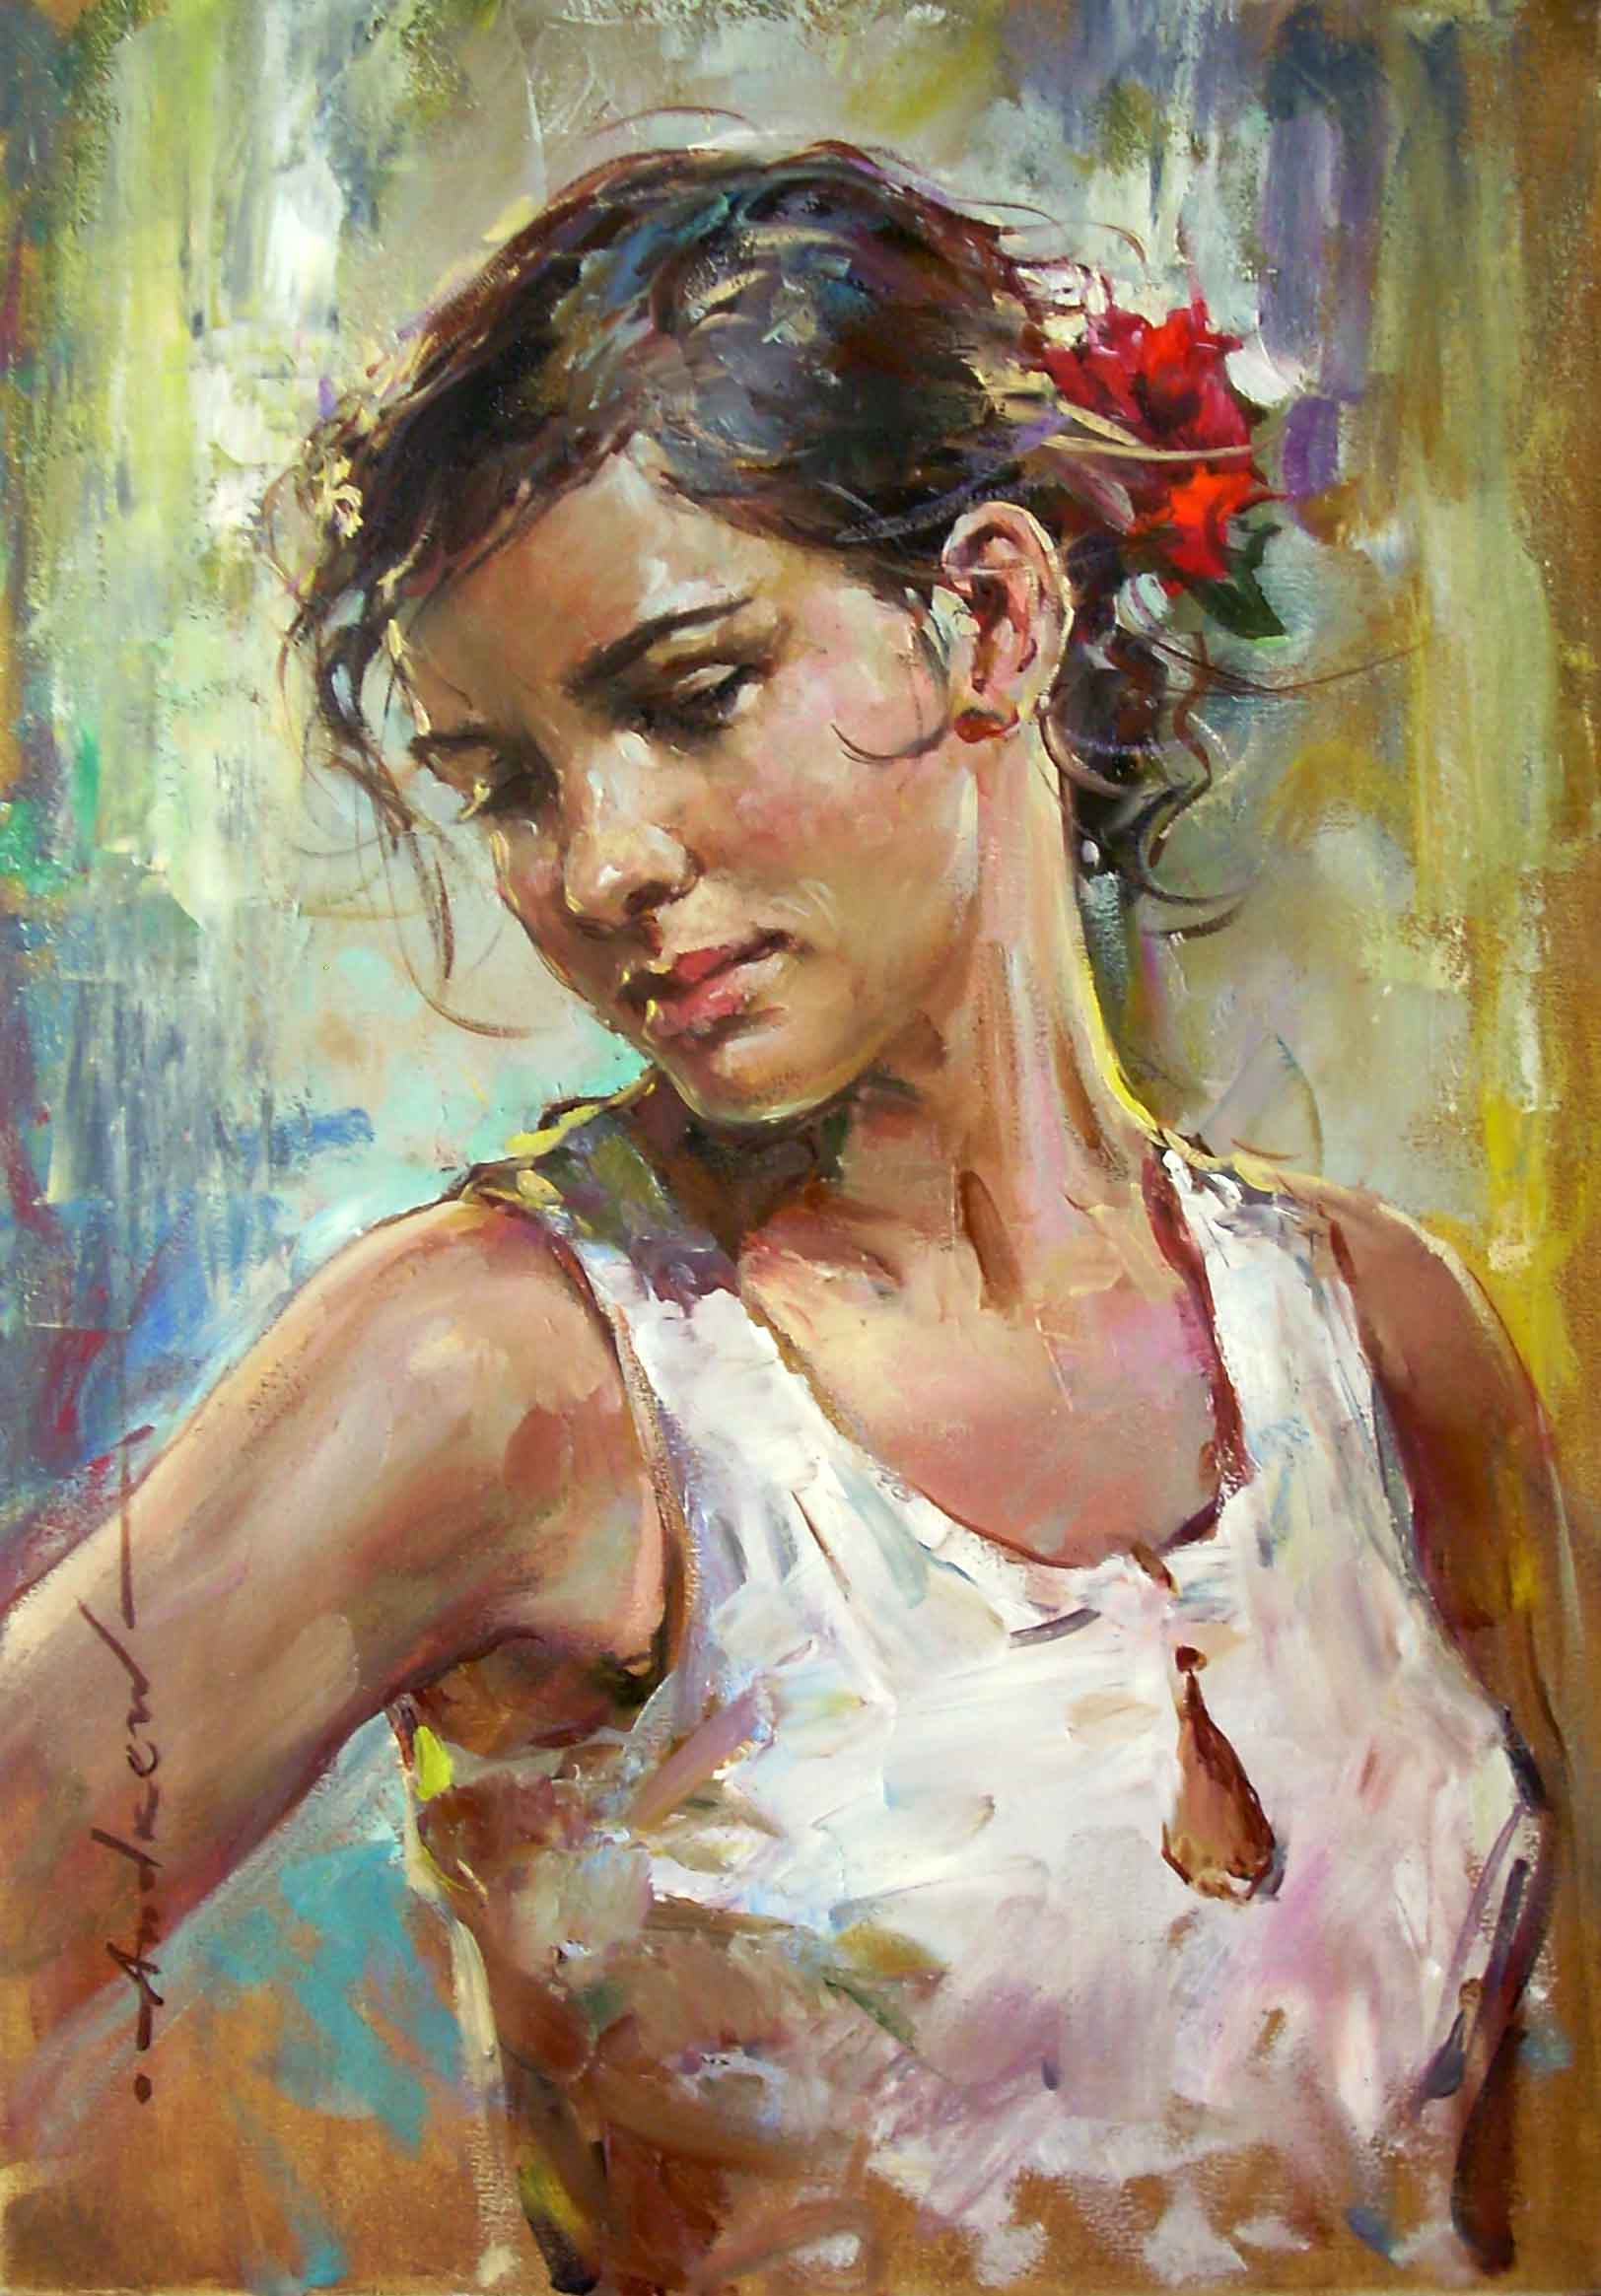 Alessandra by Andrew Atroshenko, Original, Oil on Canvas ...